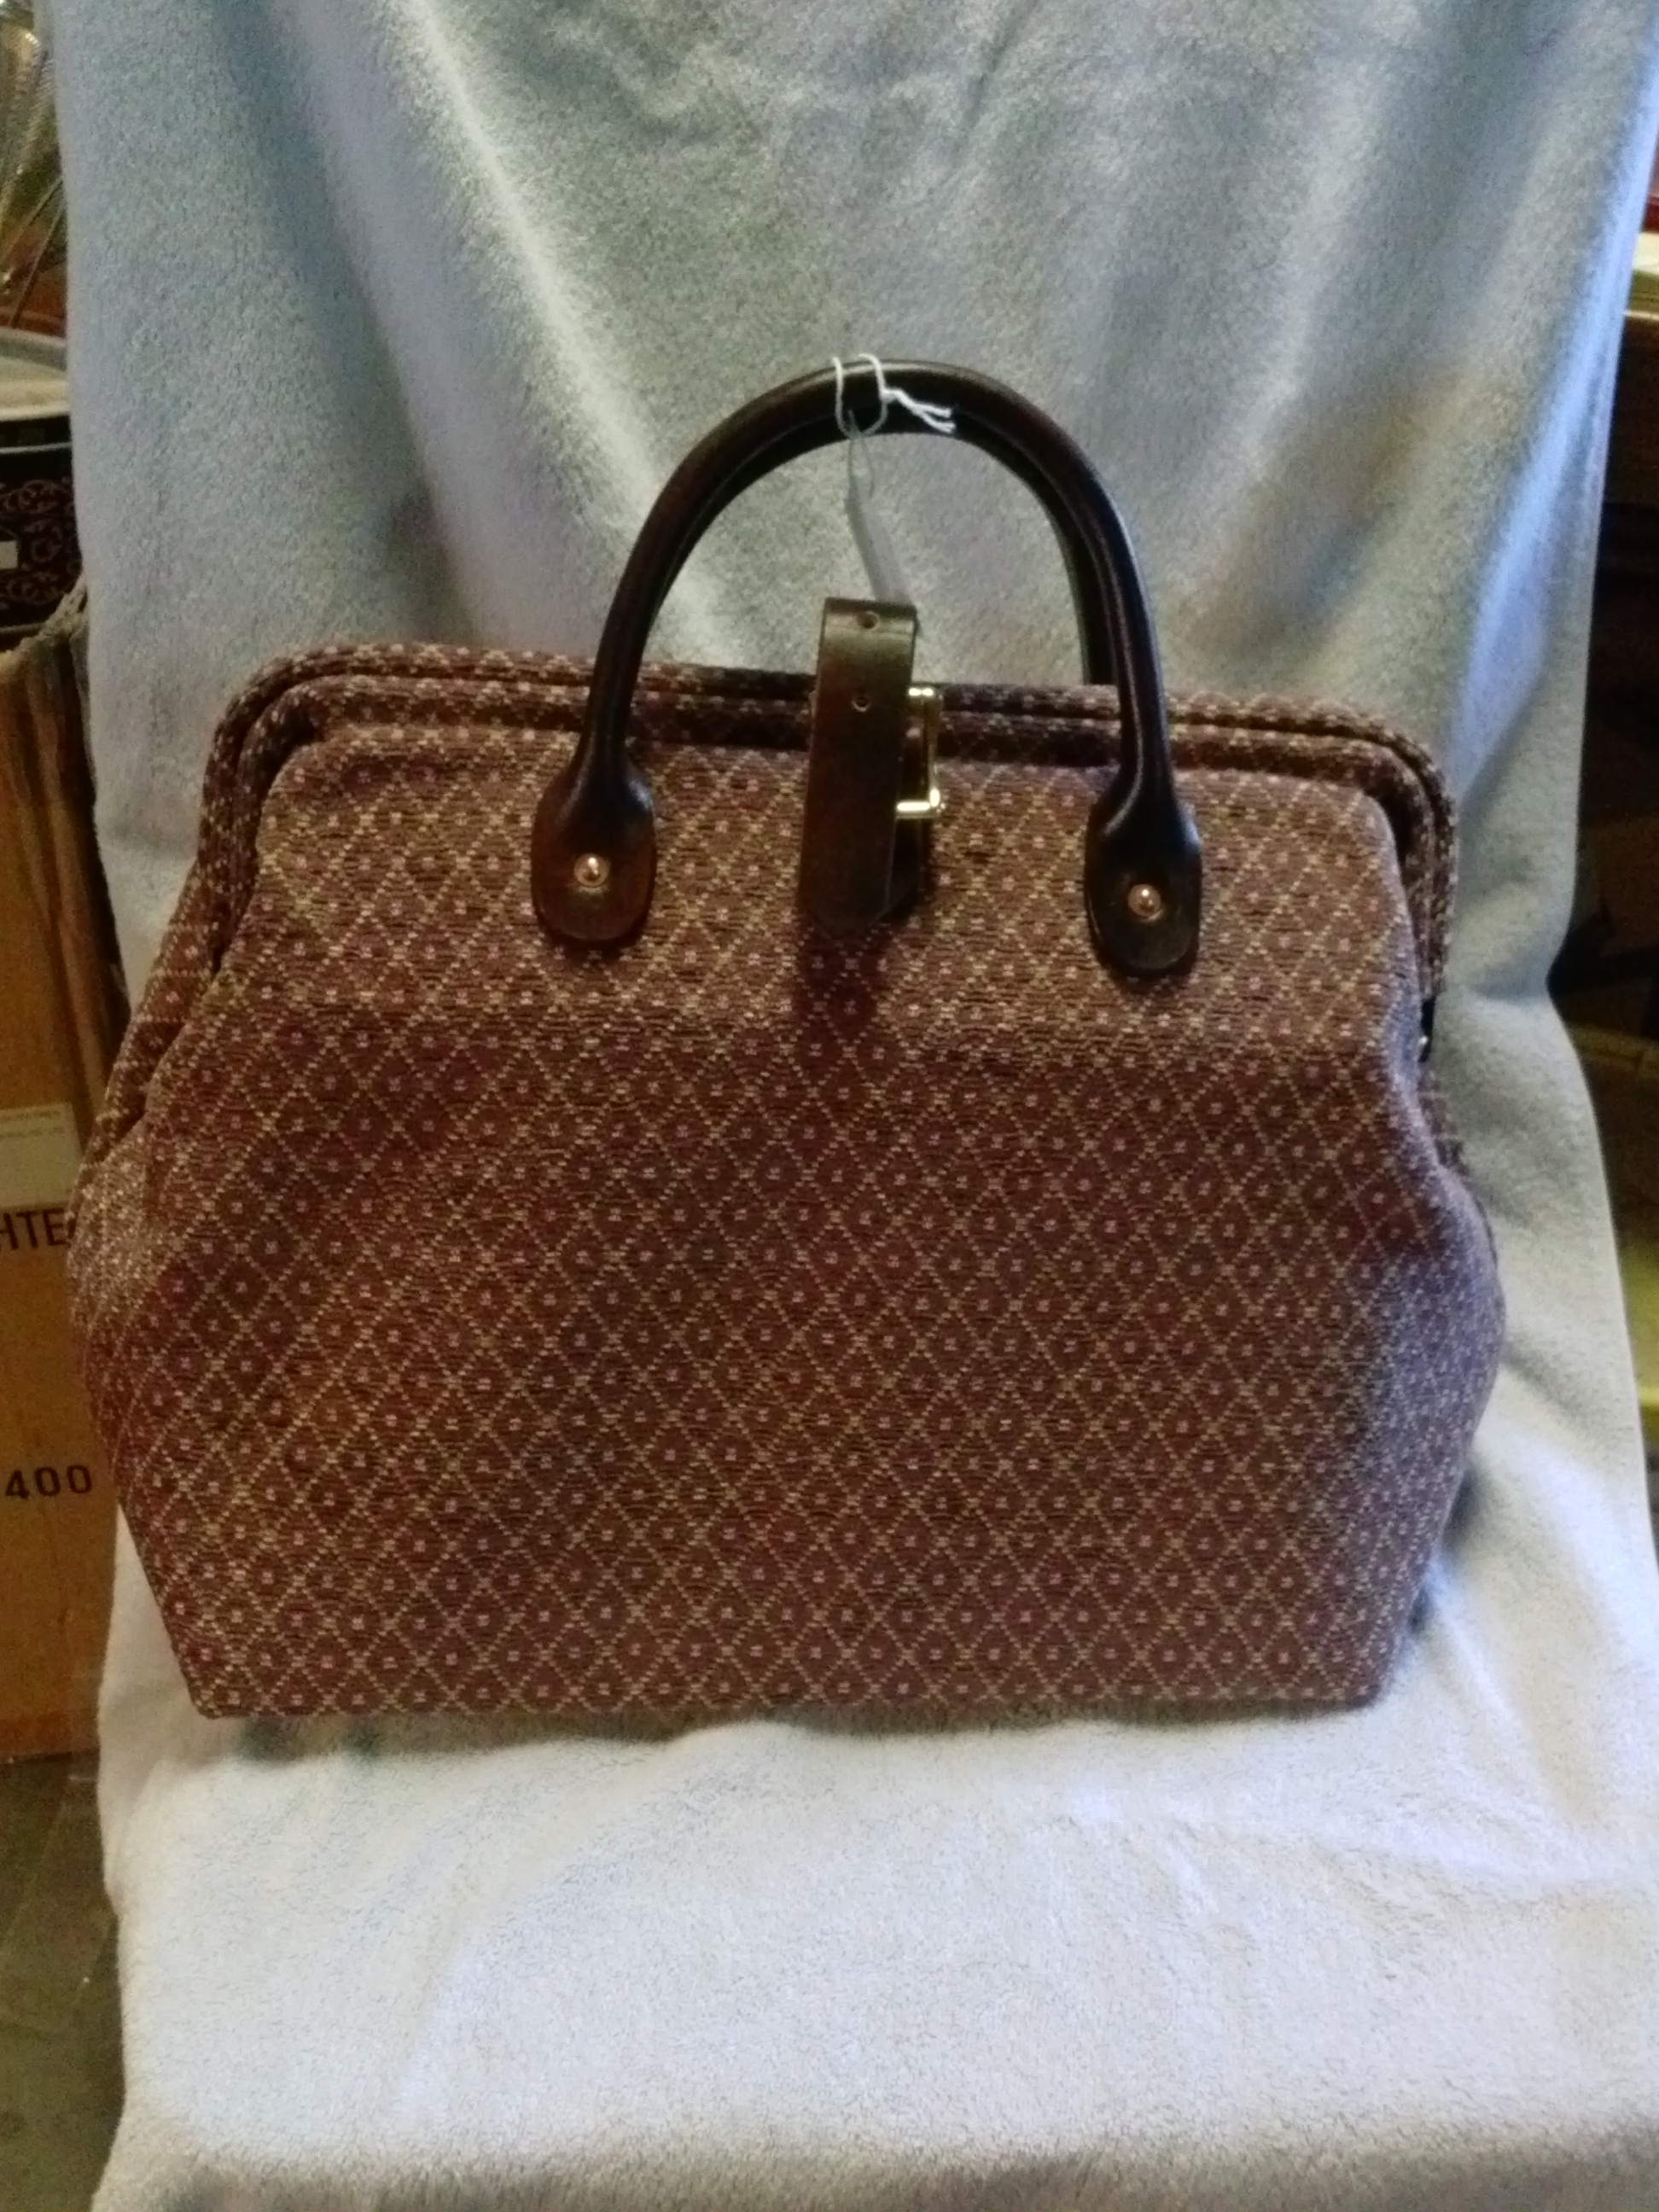 3 piece carpet bag set